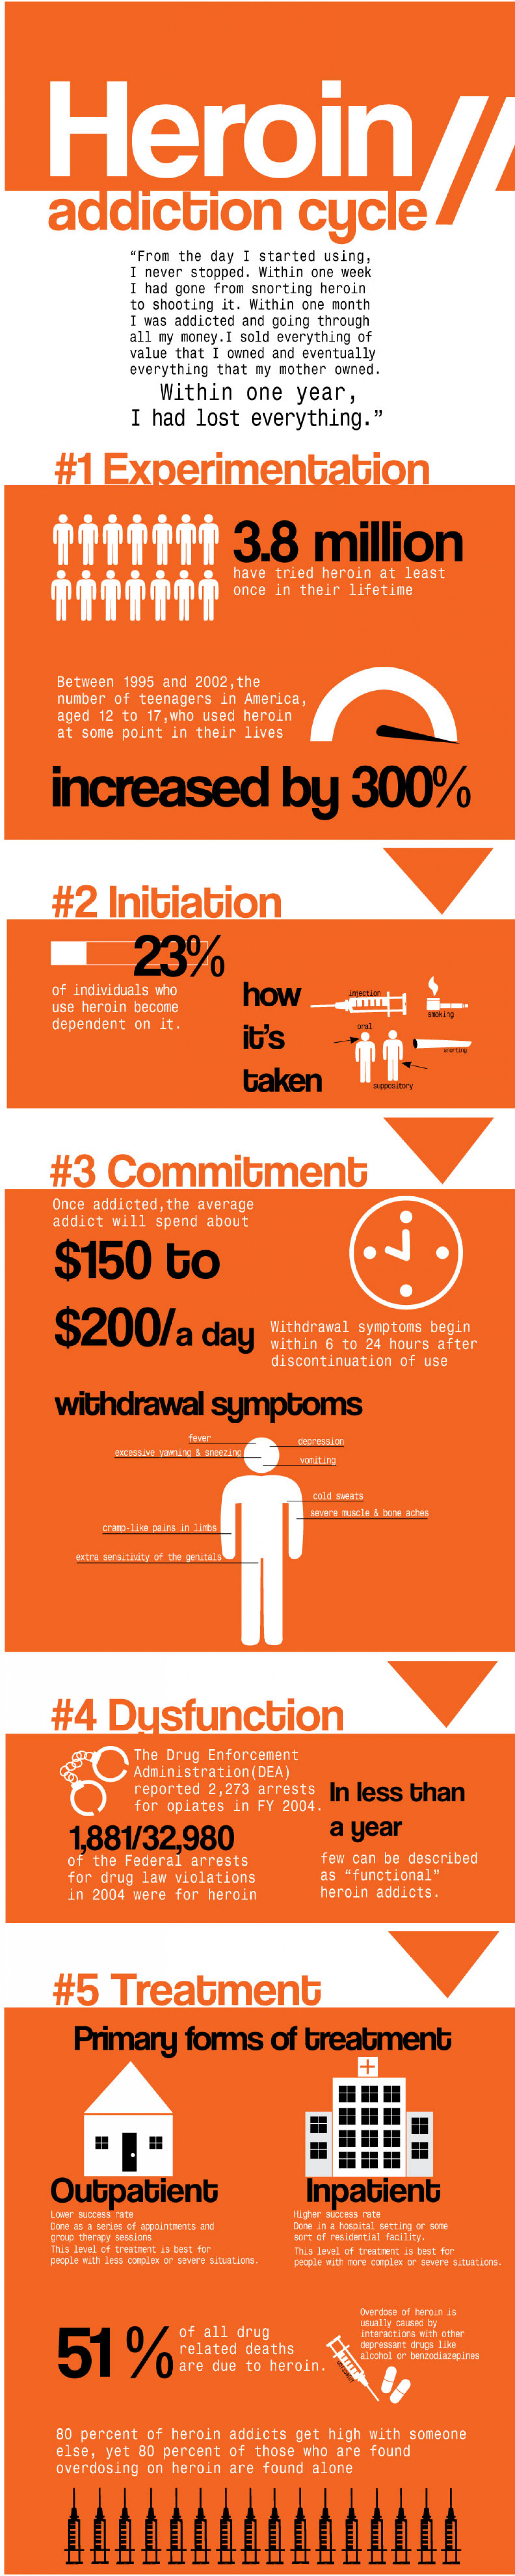 Heroin Addiction Cycle Infographic